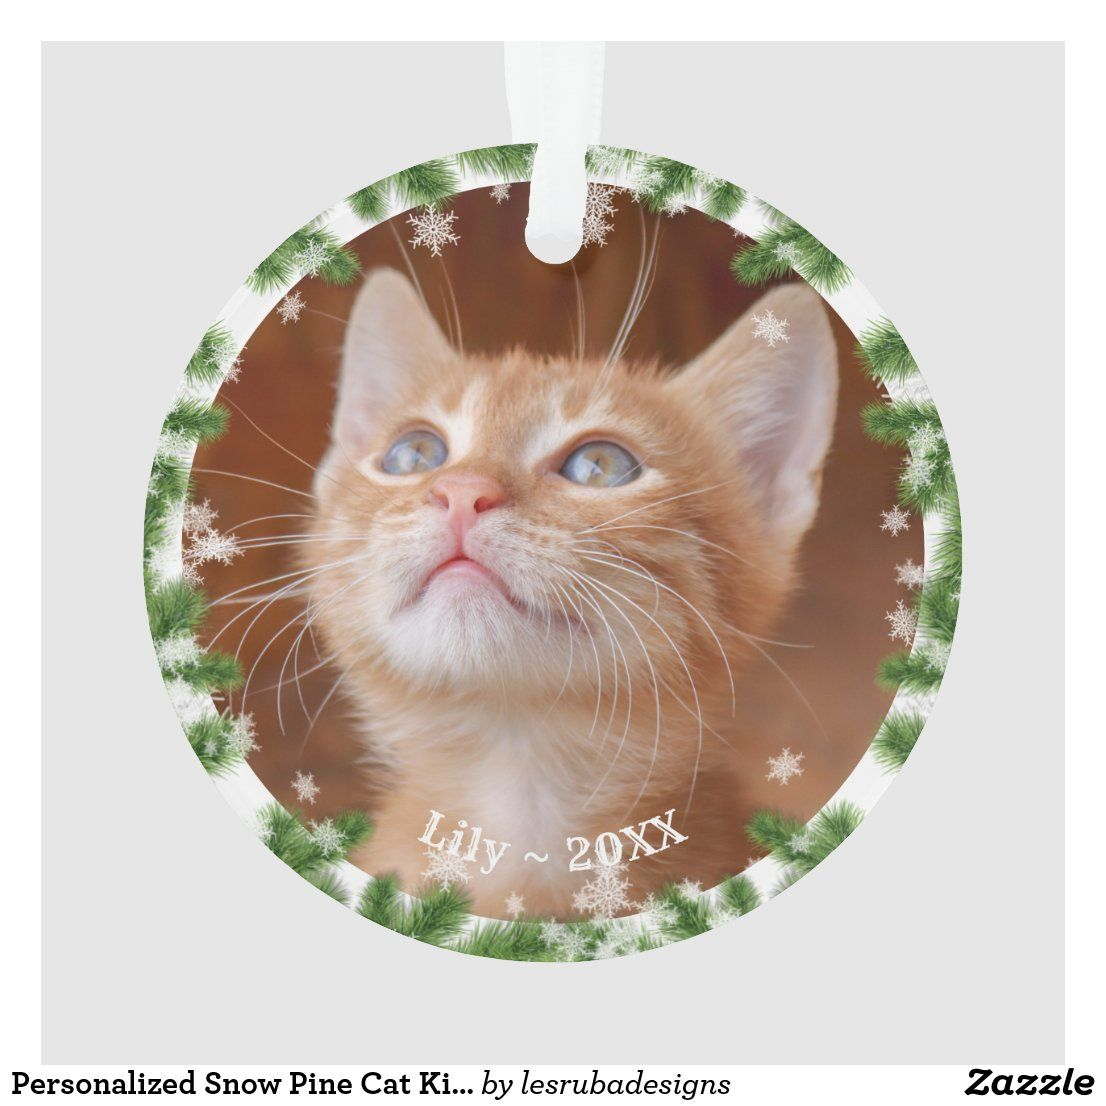 Personalized Snow Pine Cat Kitten Photo Holiday Ornament Zazzle Com In 2020 Kitten Photos Cats And Kittens Kitten